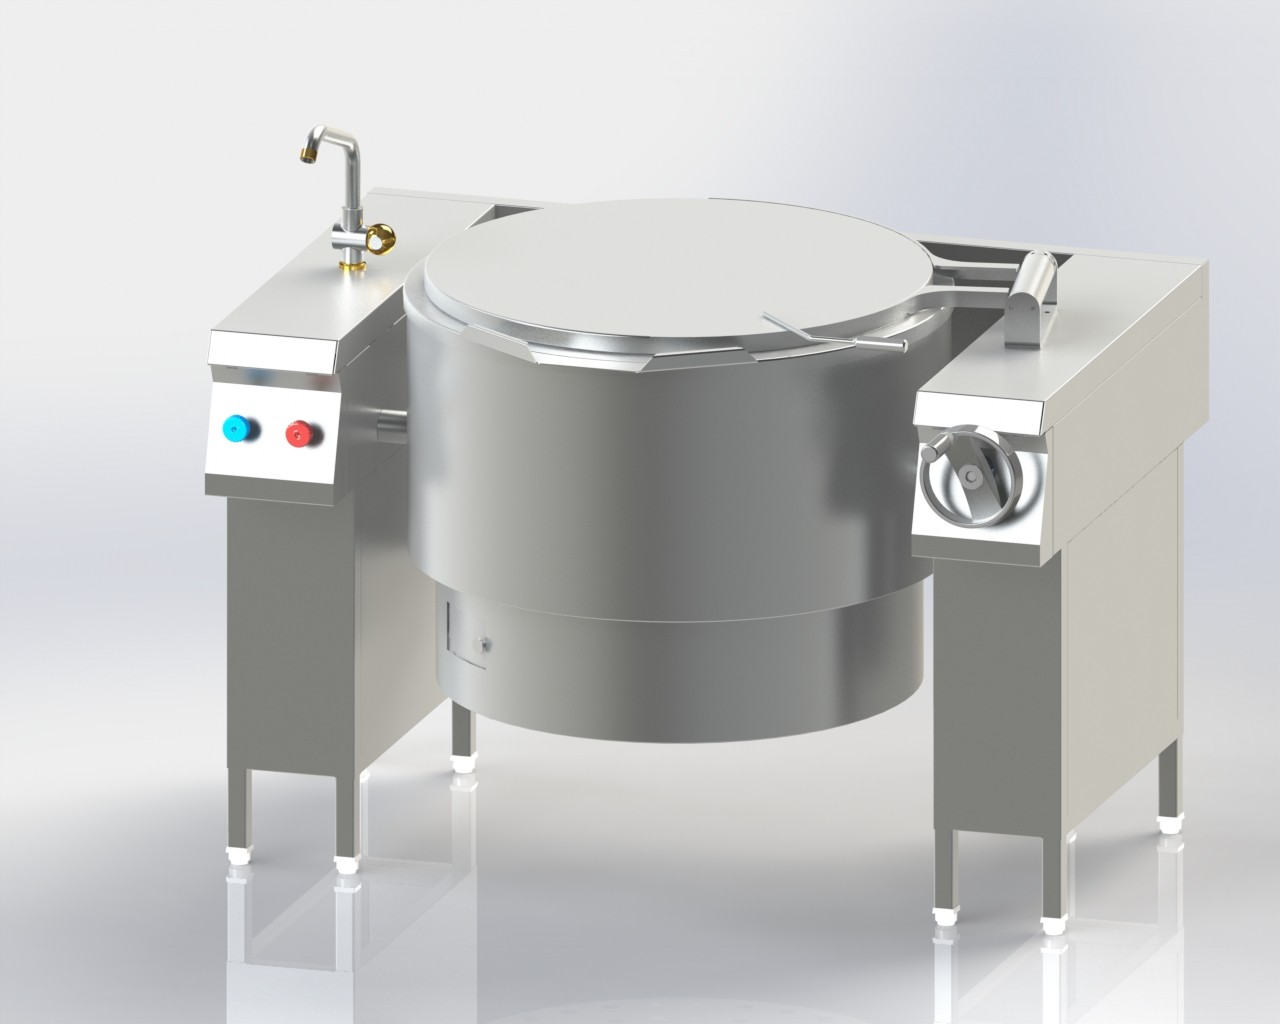 Boiling Pan with Stand